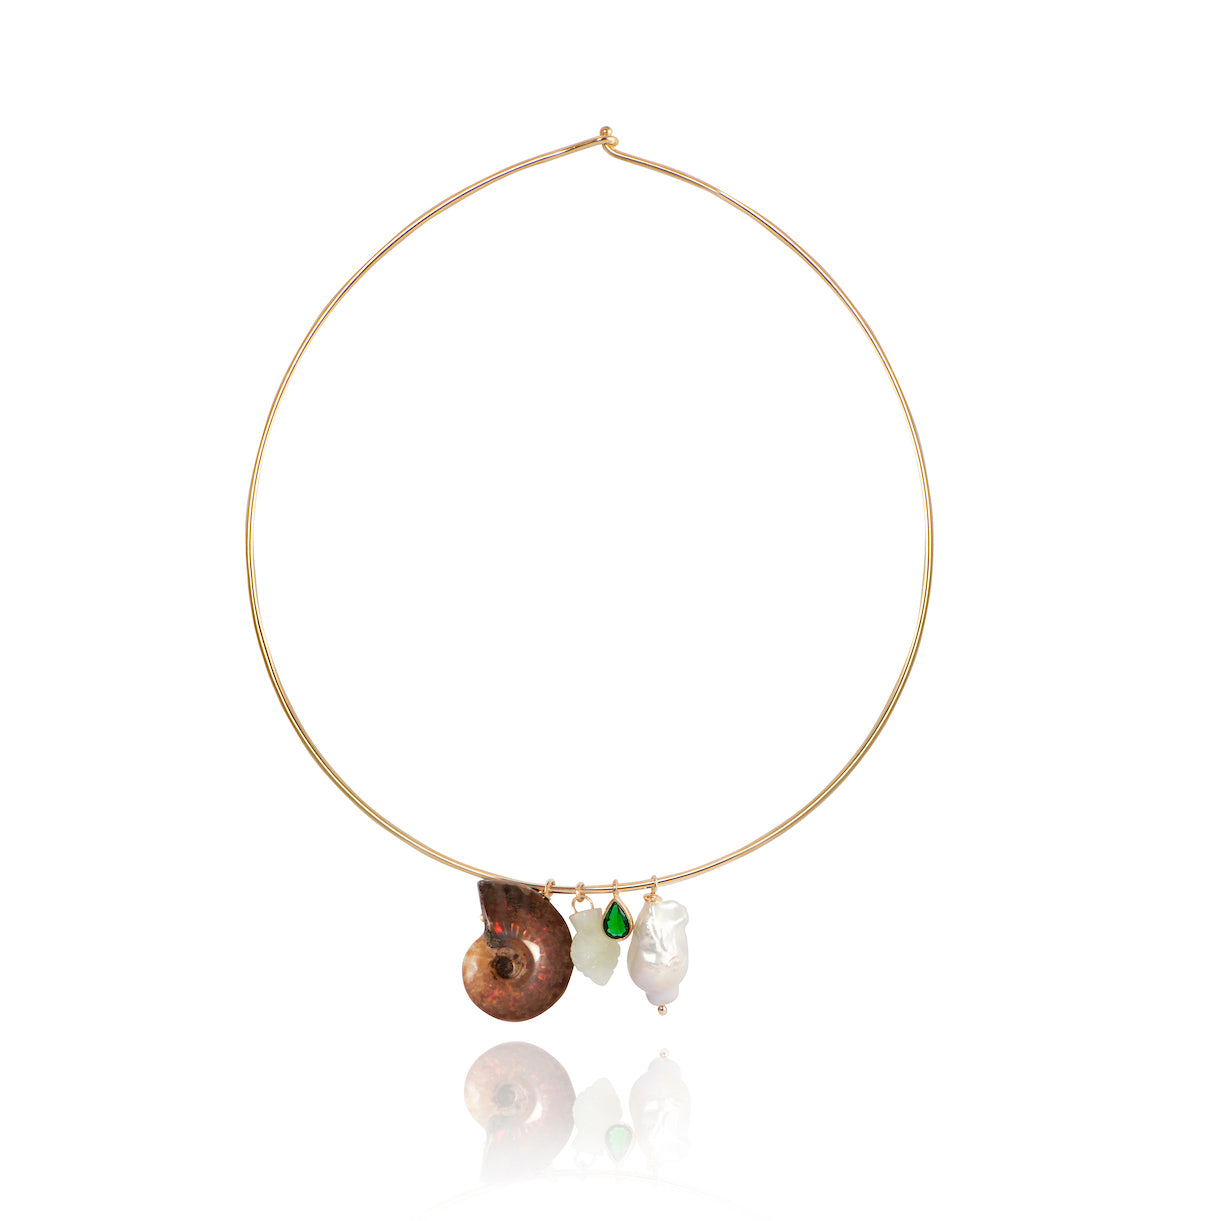 APPLE & FIGS - ON THE SHORE MUTLI CHARM CHOKER